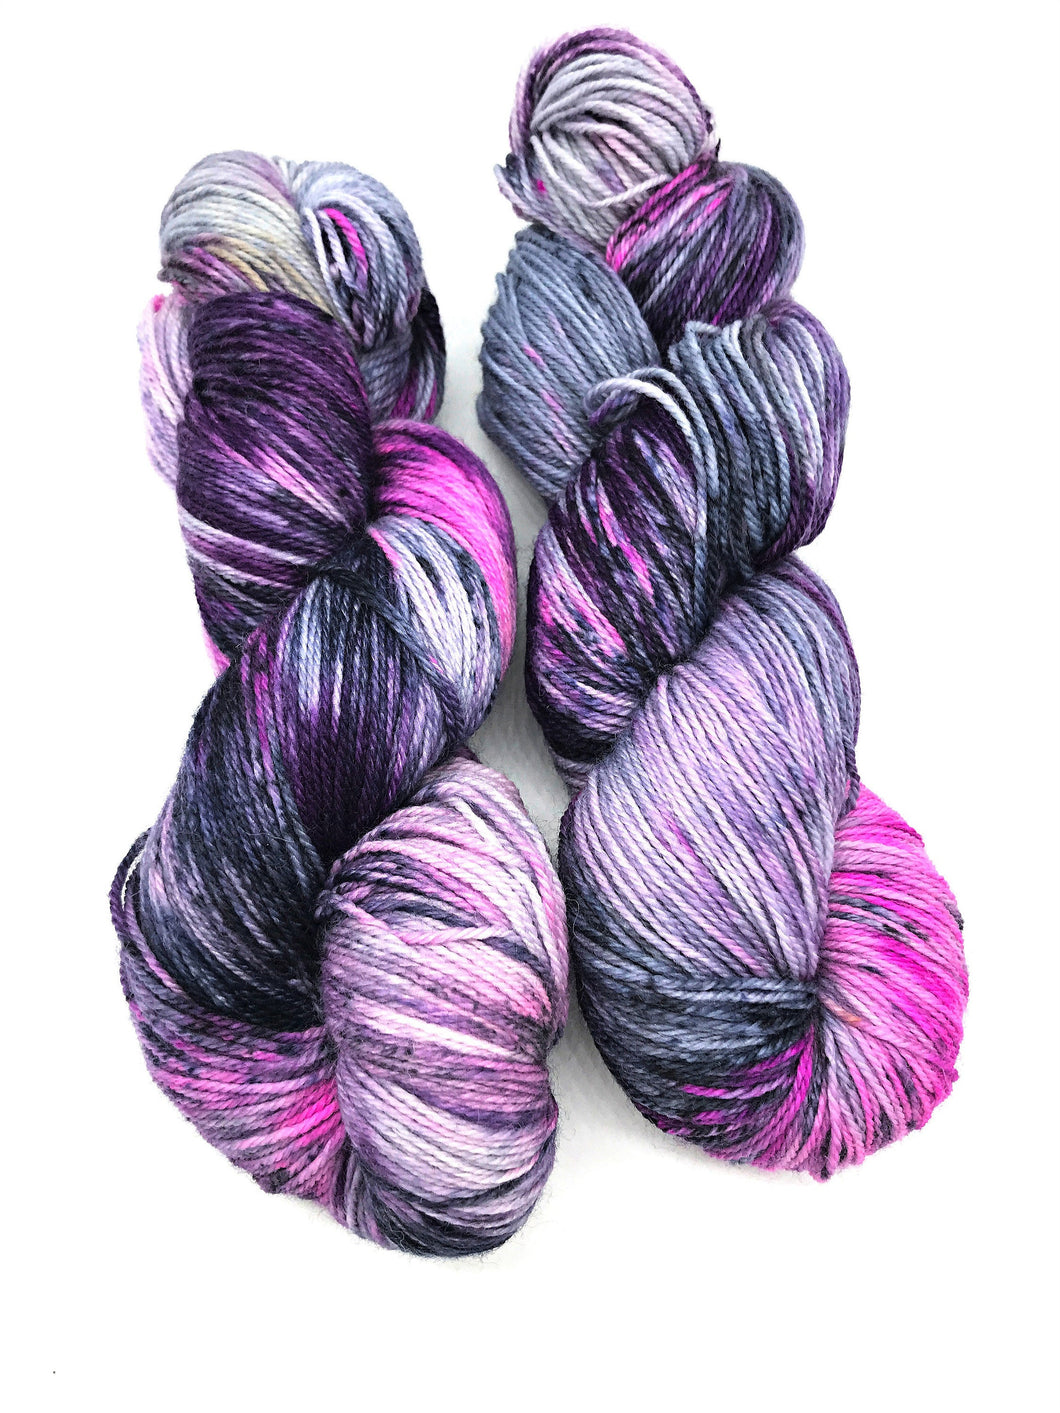 Bark at the Moon colourway for knitting sock and shawls in Fingering